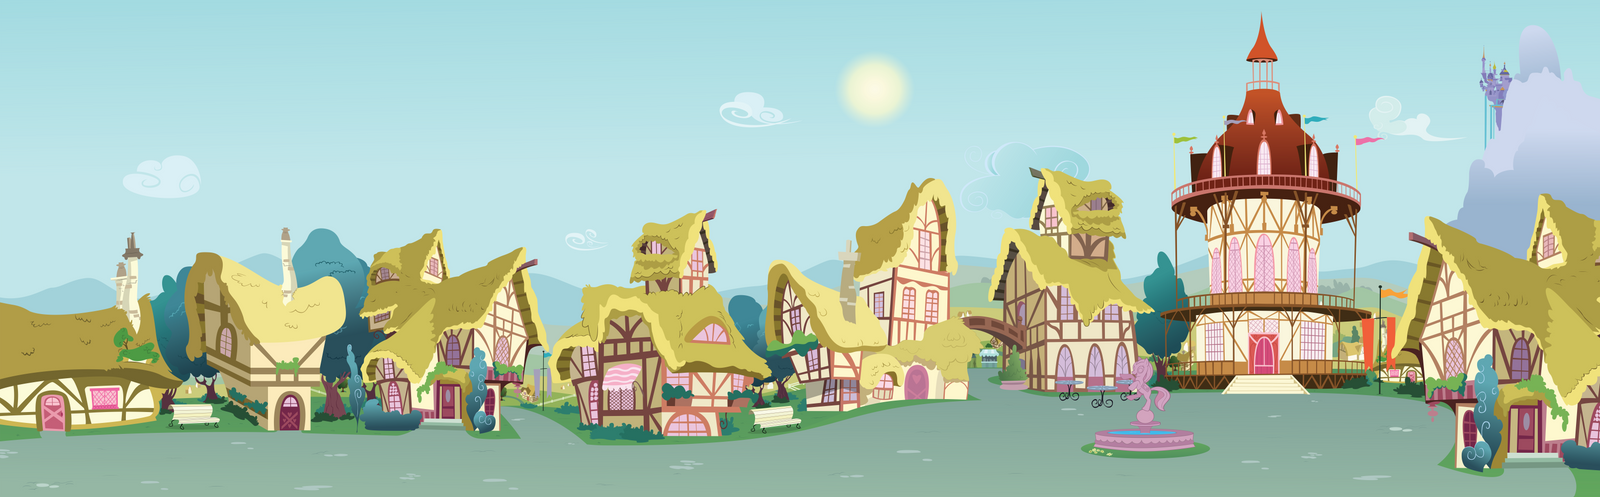 Ponyville Street to Town Center